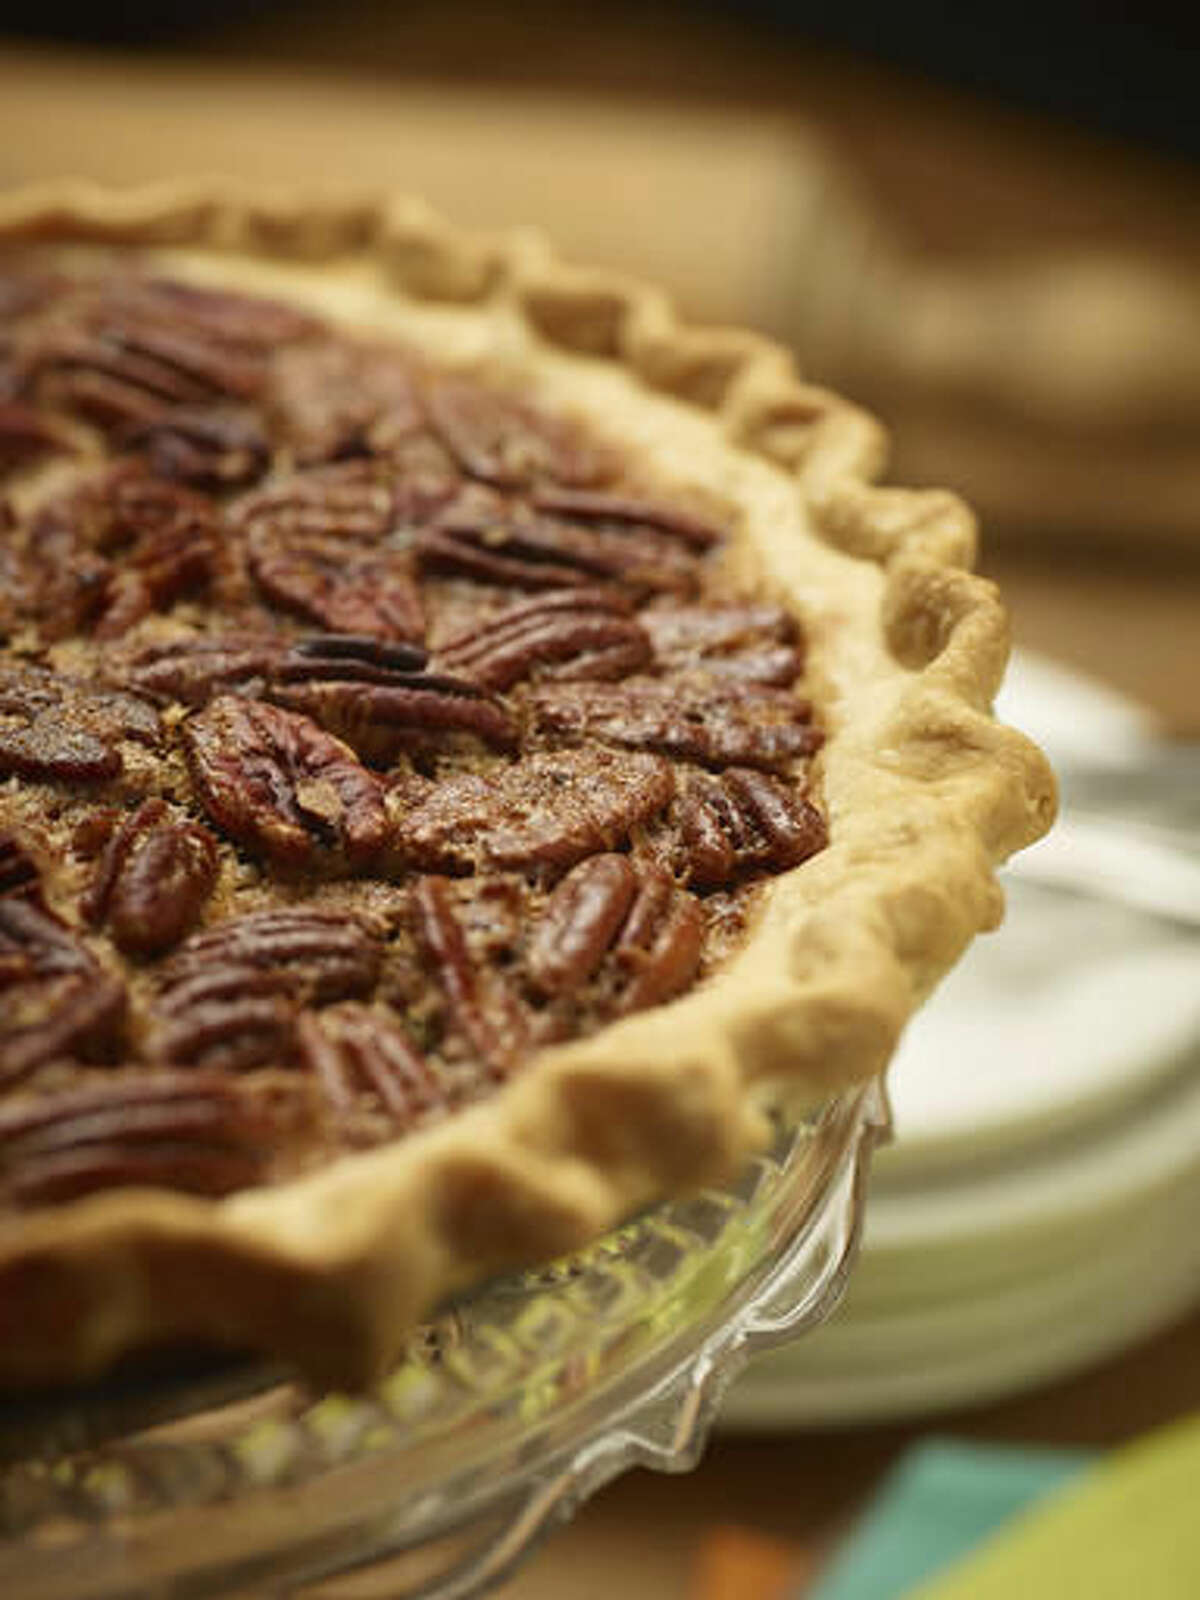 This Oct. 14, 2016 photo provided by The Culinary Institute of America shows pecan pie in Hyde Park, N.Y. This dish is from a recipe by the CIA. (Phil Mansfield/The Culinary Institute of America via AP)